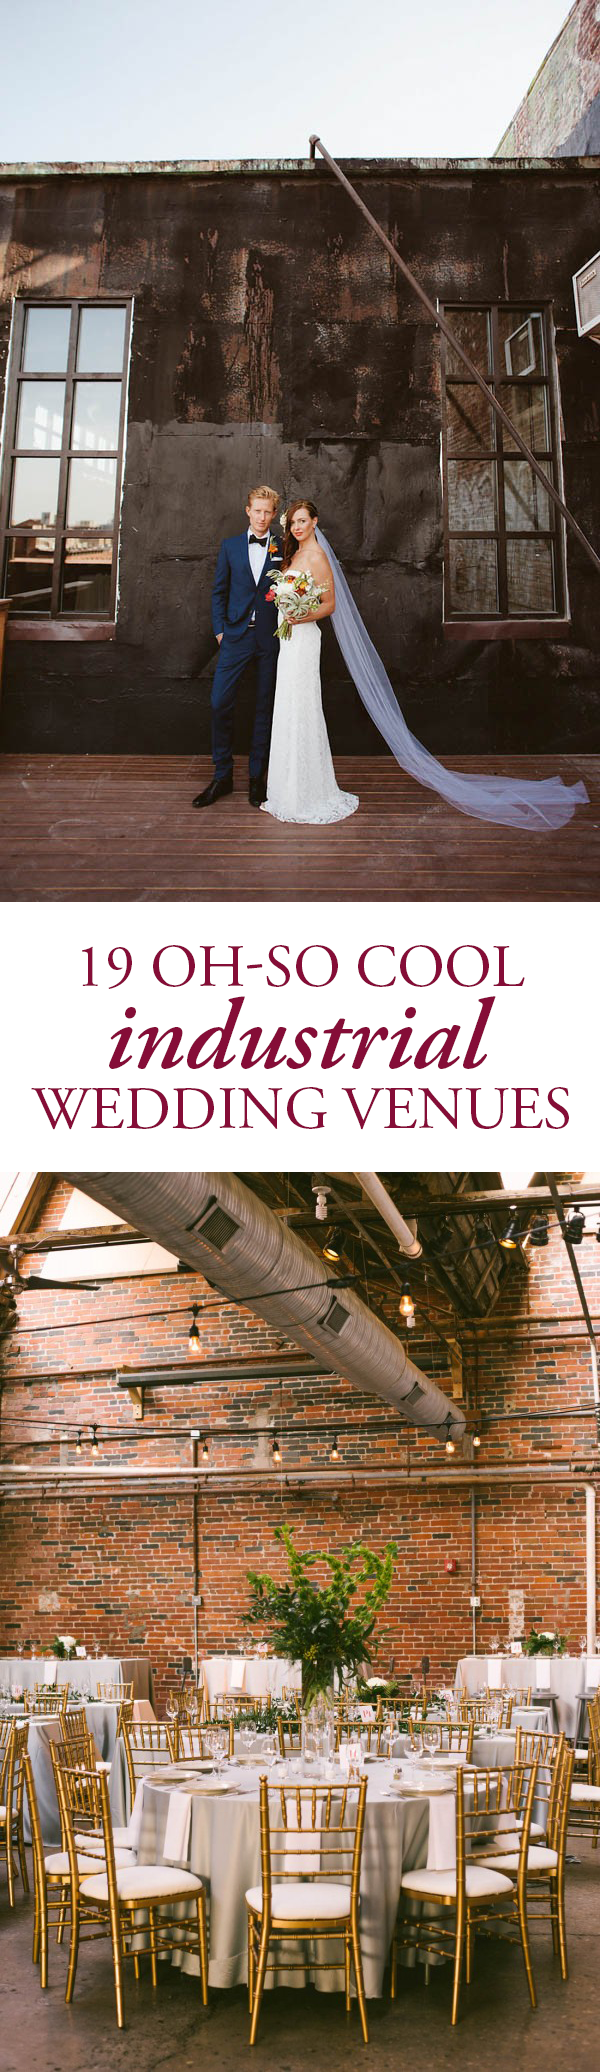 19 Oh So Cool Wedding Venues